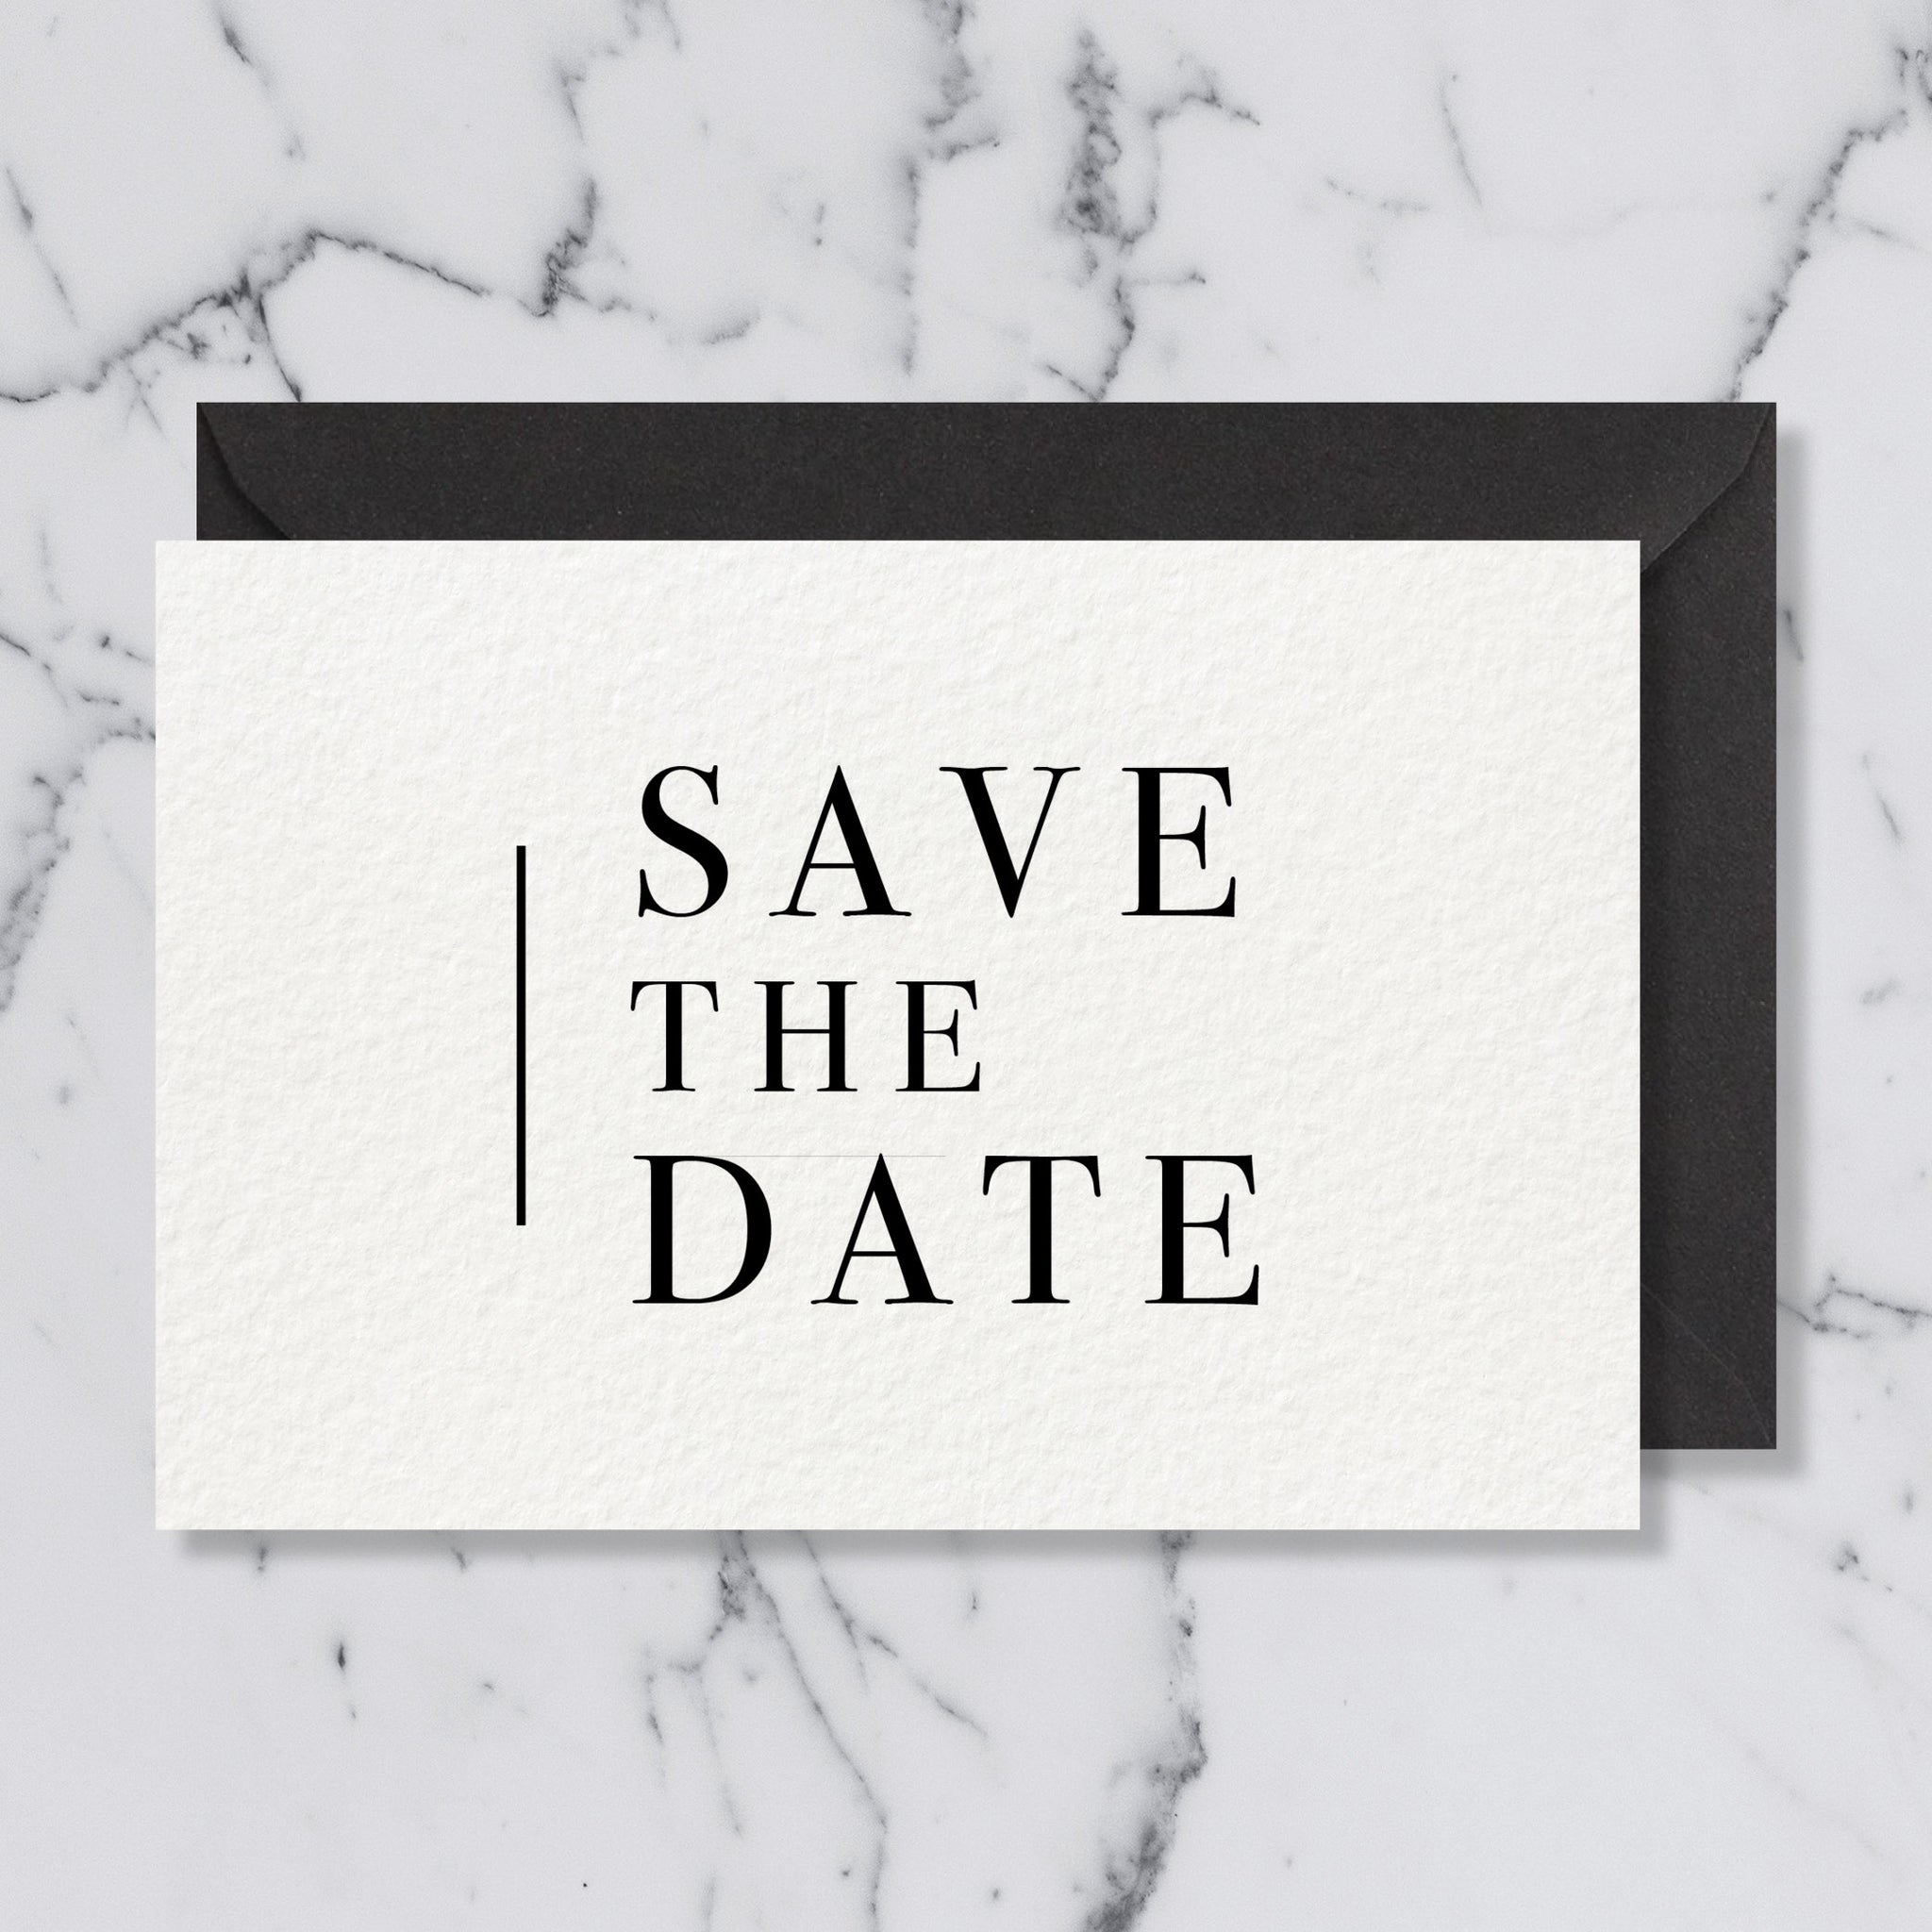 Save the date - Modern Love - SEVEN PAPER